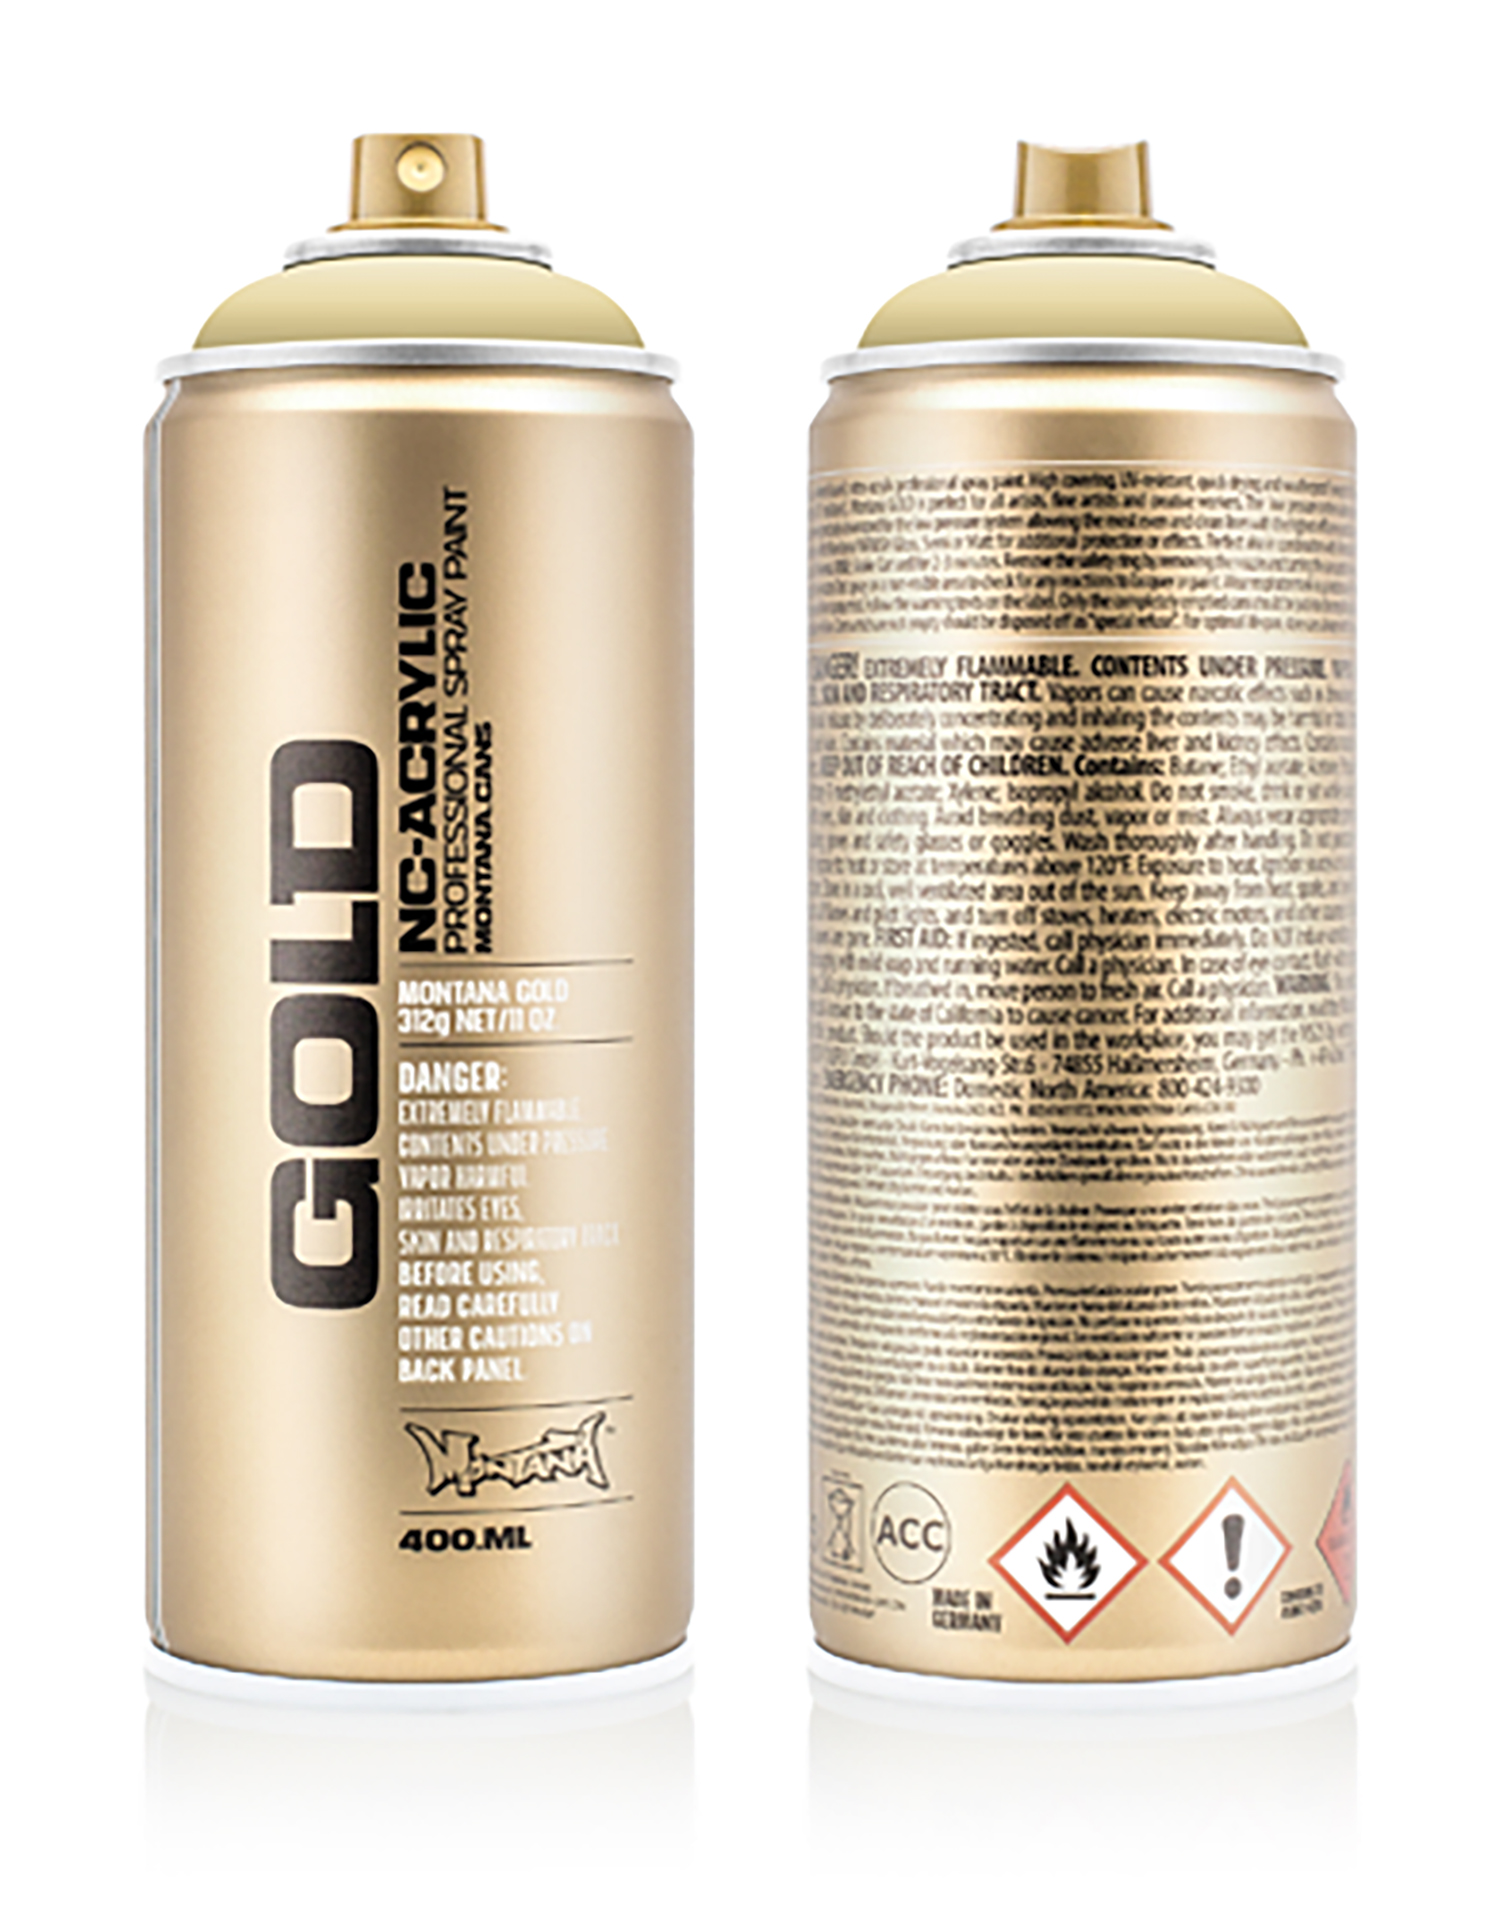 MONTANA-GOLD-SPRAY-400ML-G-8010